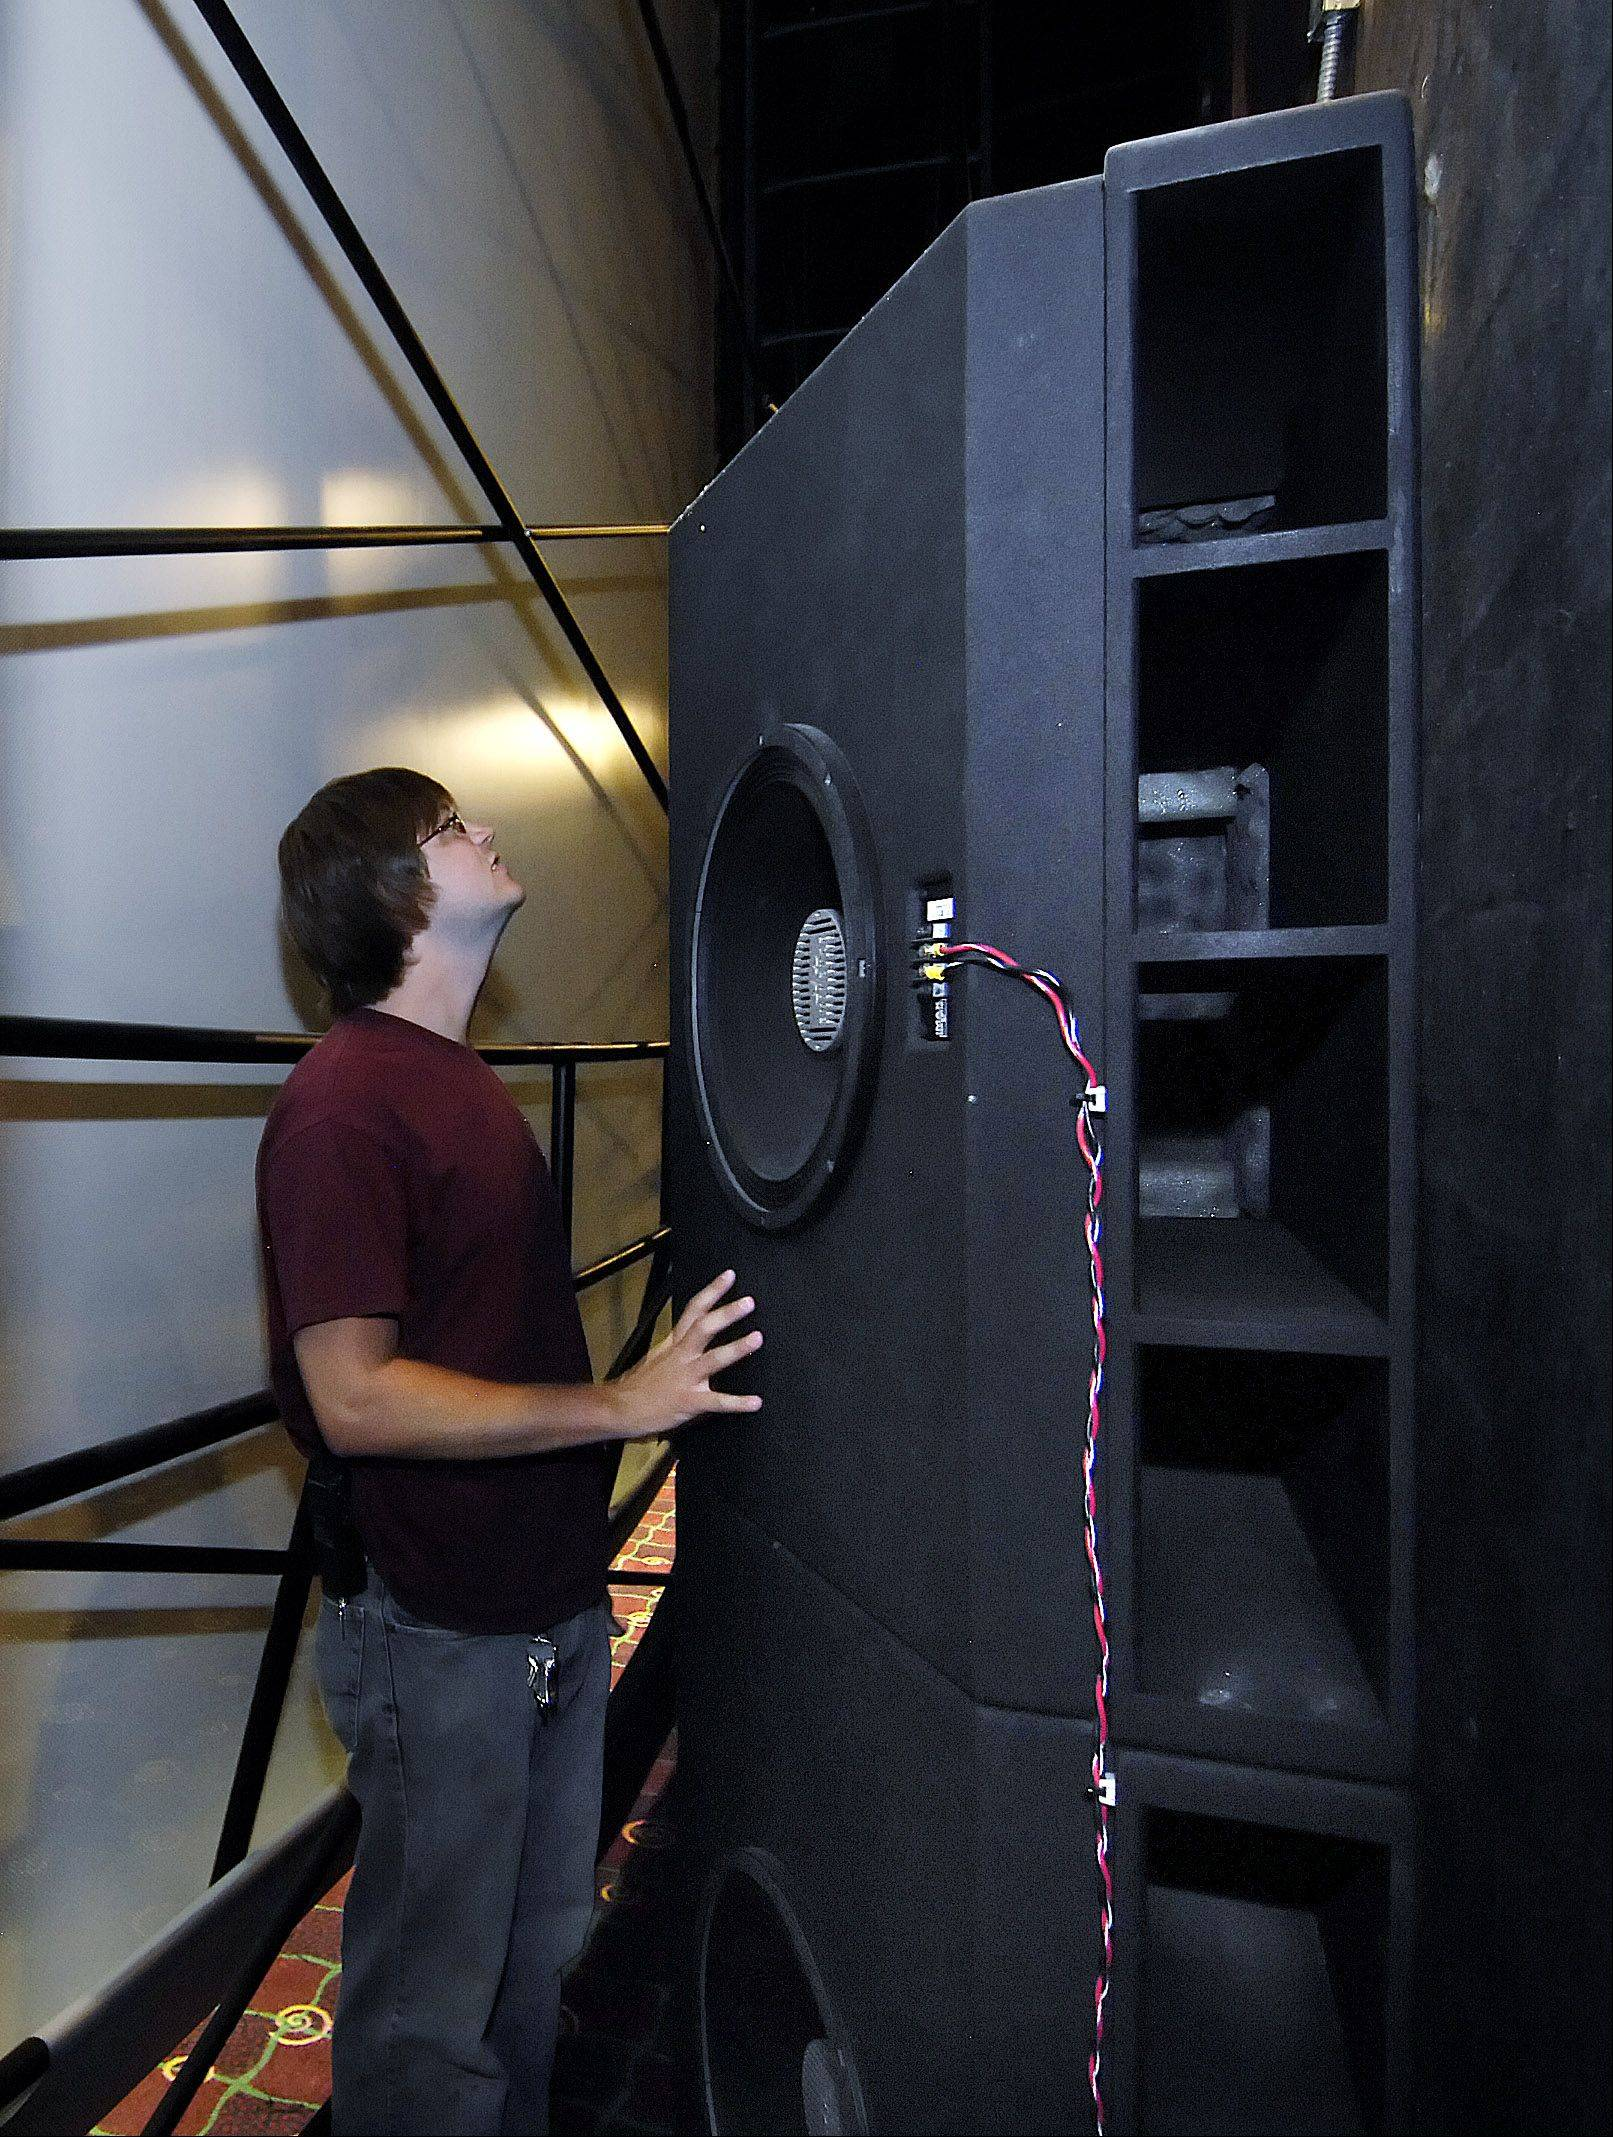 The woofers, or speakers that deliver the thumping low bass sound, are more than 7 feet tall and are stacked behind the middle of the IMAX screen.